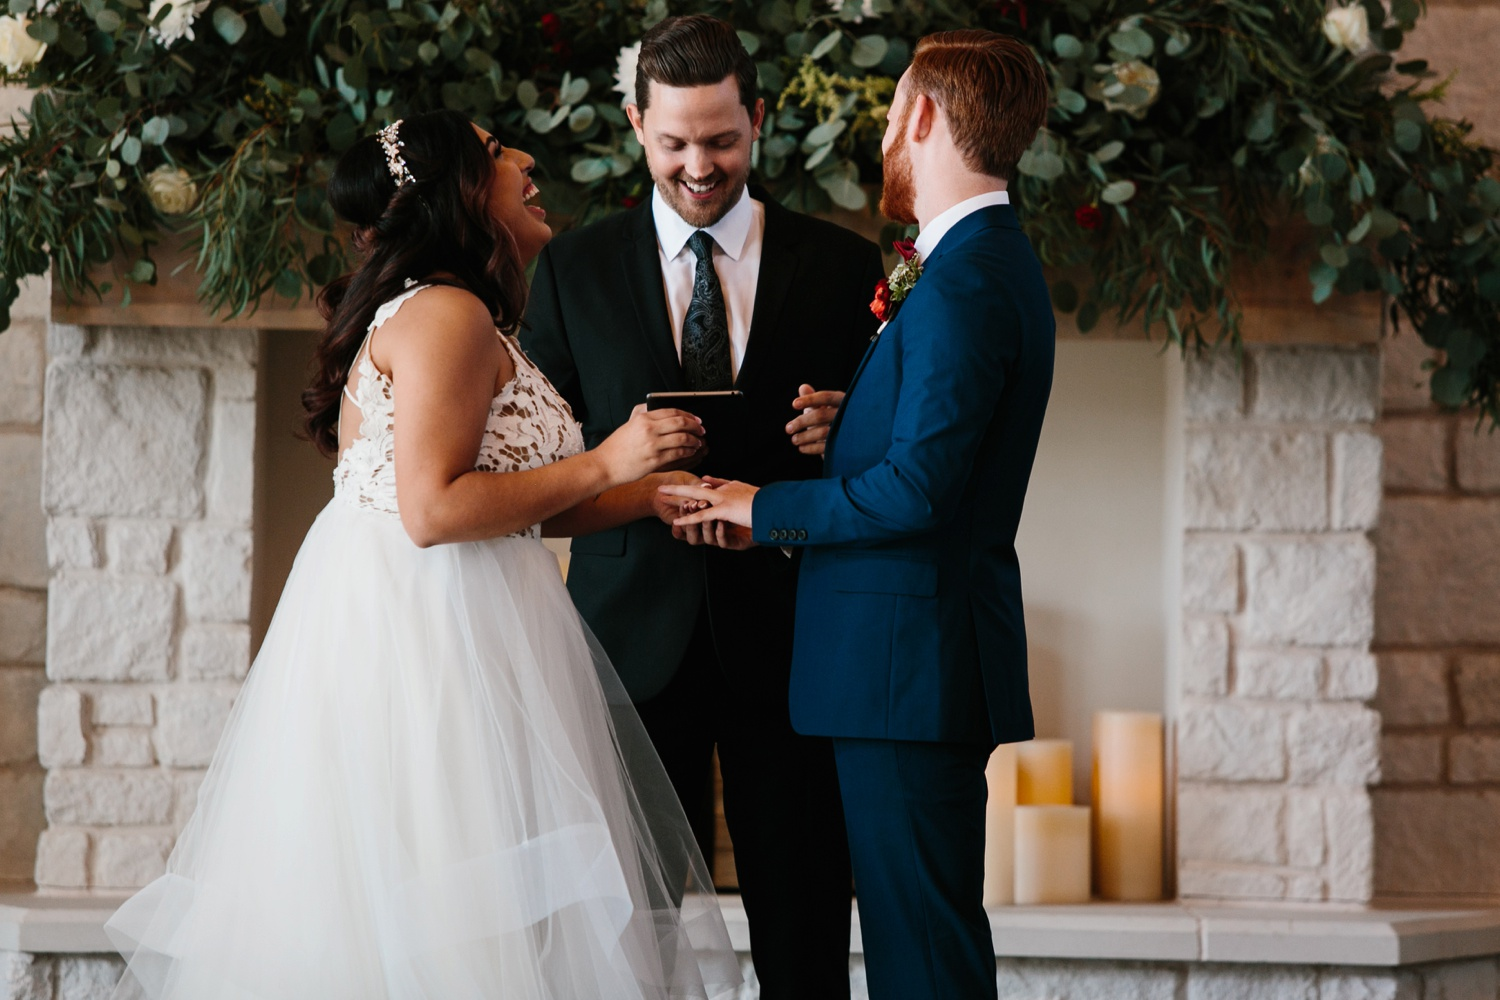 Grant + Lysette | a vibrant, deep burgundy and navy, and mixed metals wedding at Hidden Pines Chapel by North Texas Wedding Photographer Rachel Meagan Photography 093